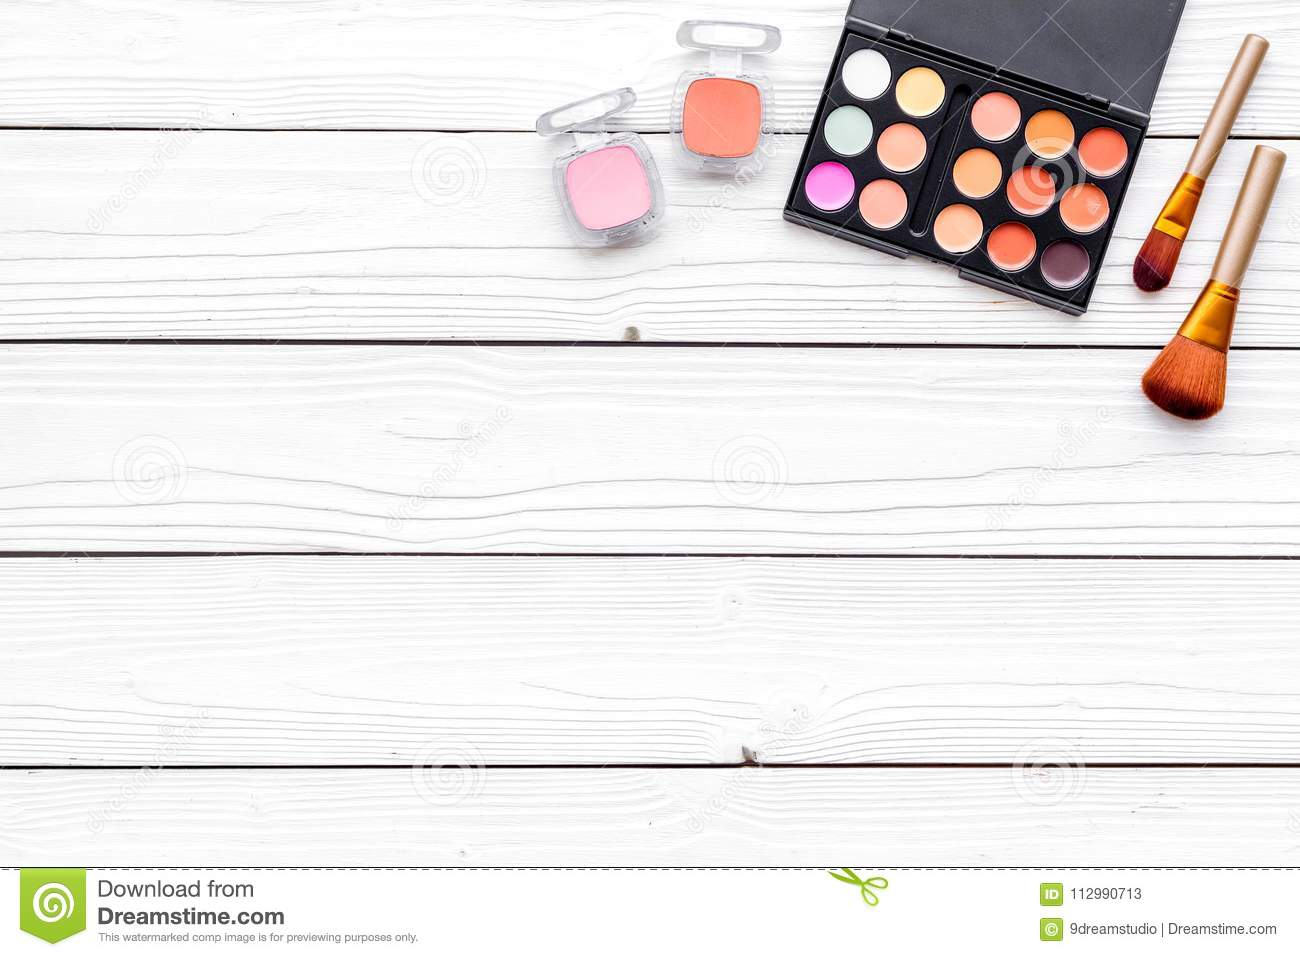 Decorative cosmetics set with eyeshadow, rouge, brushes on white desk background top view copy space